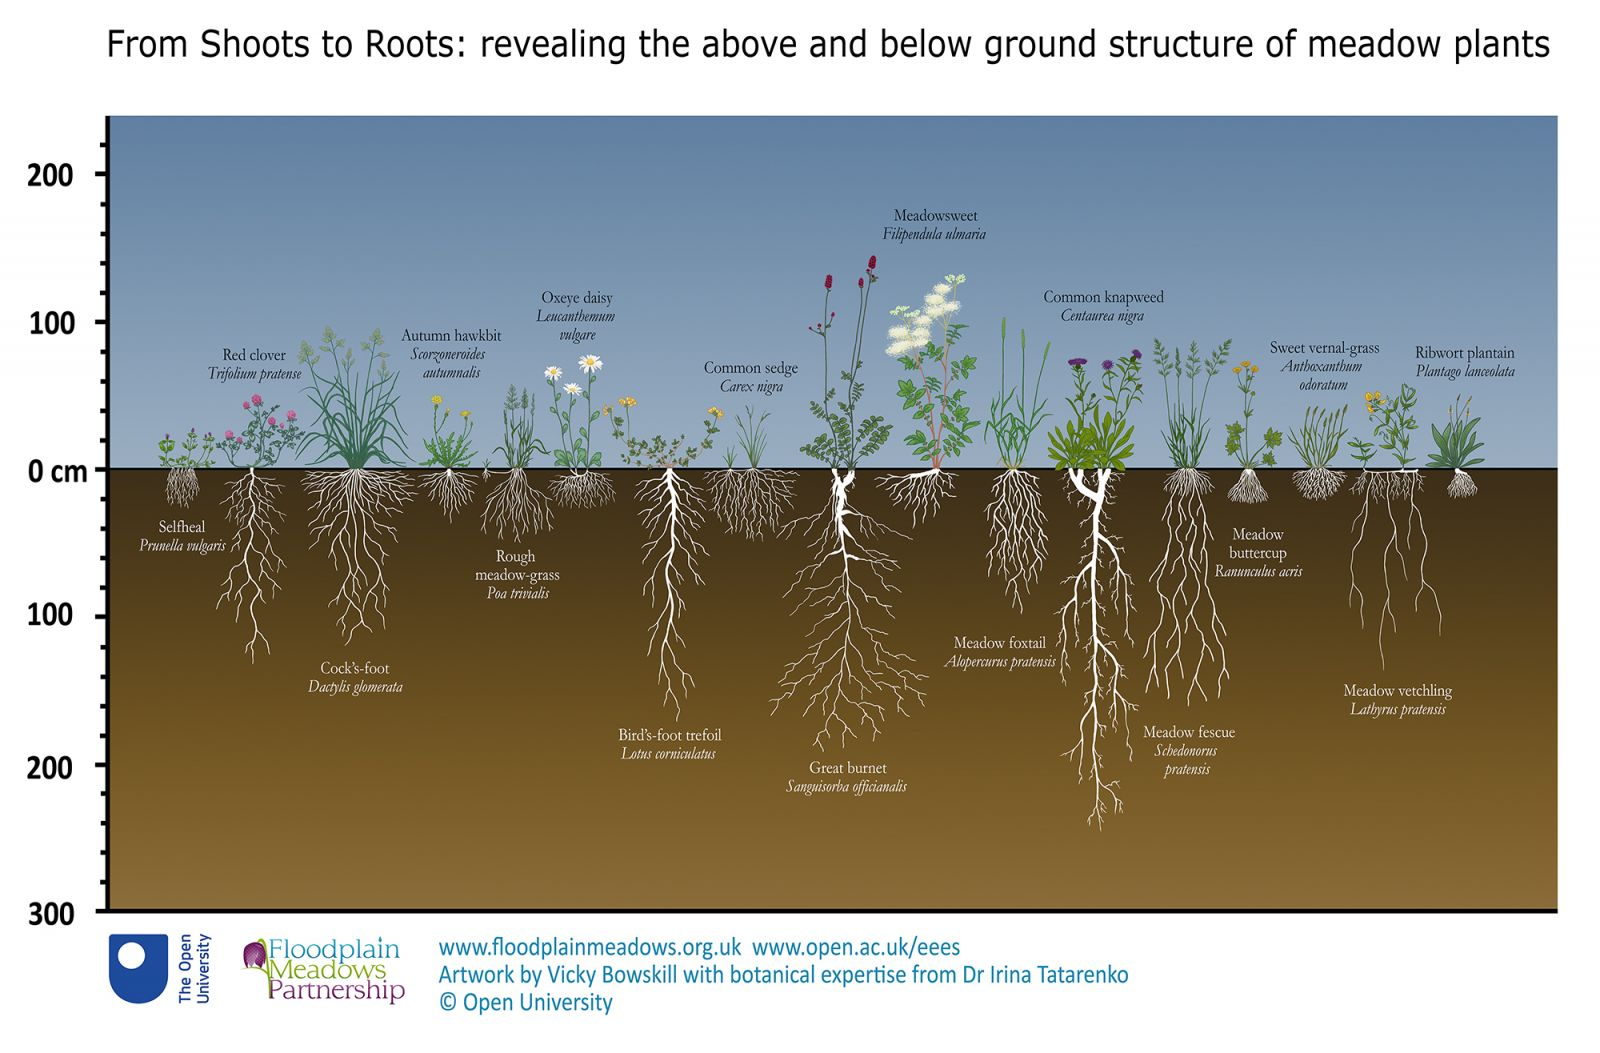 From Shoots to Roots: revealing the above and below ground structure of meadow plants